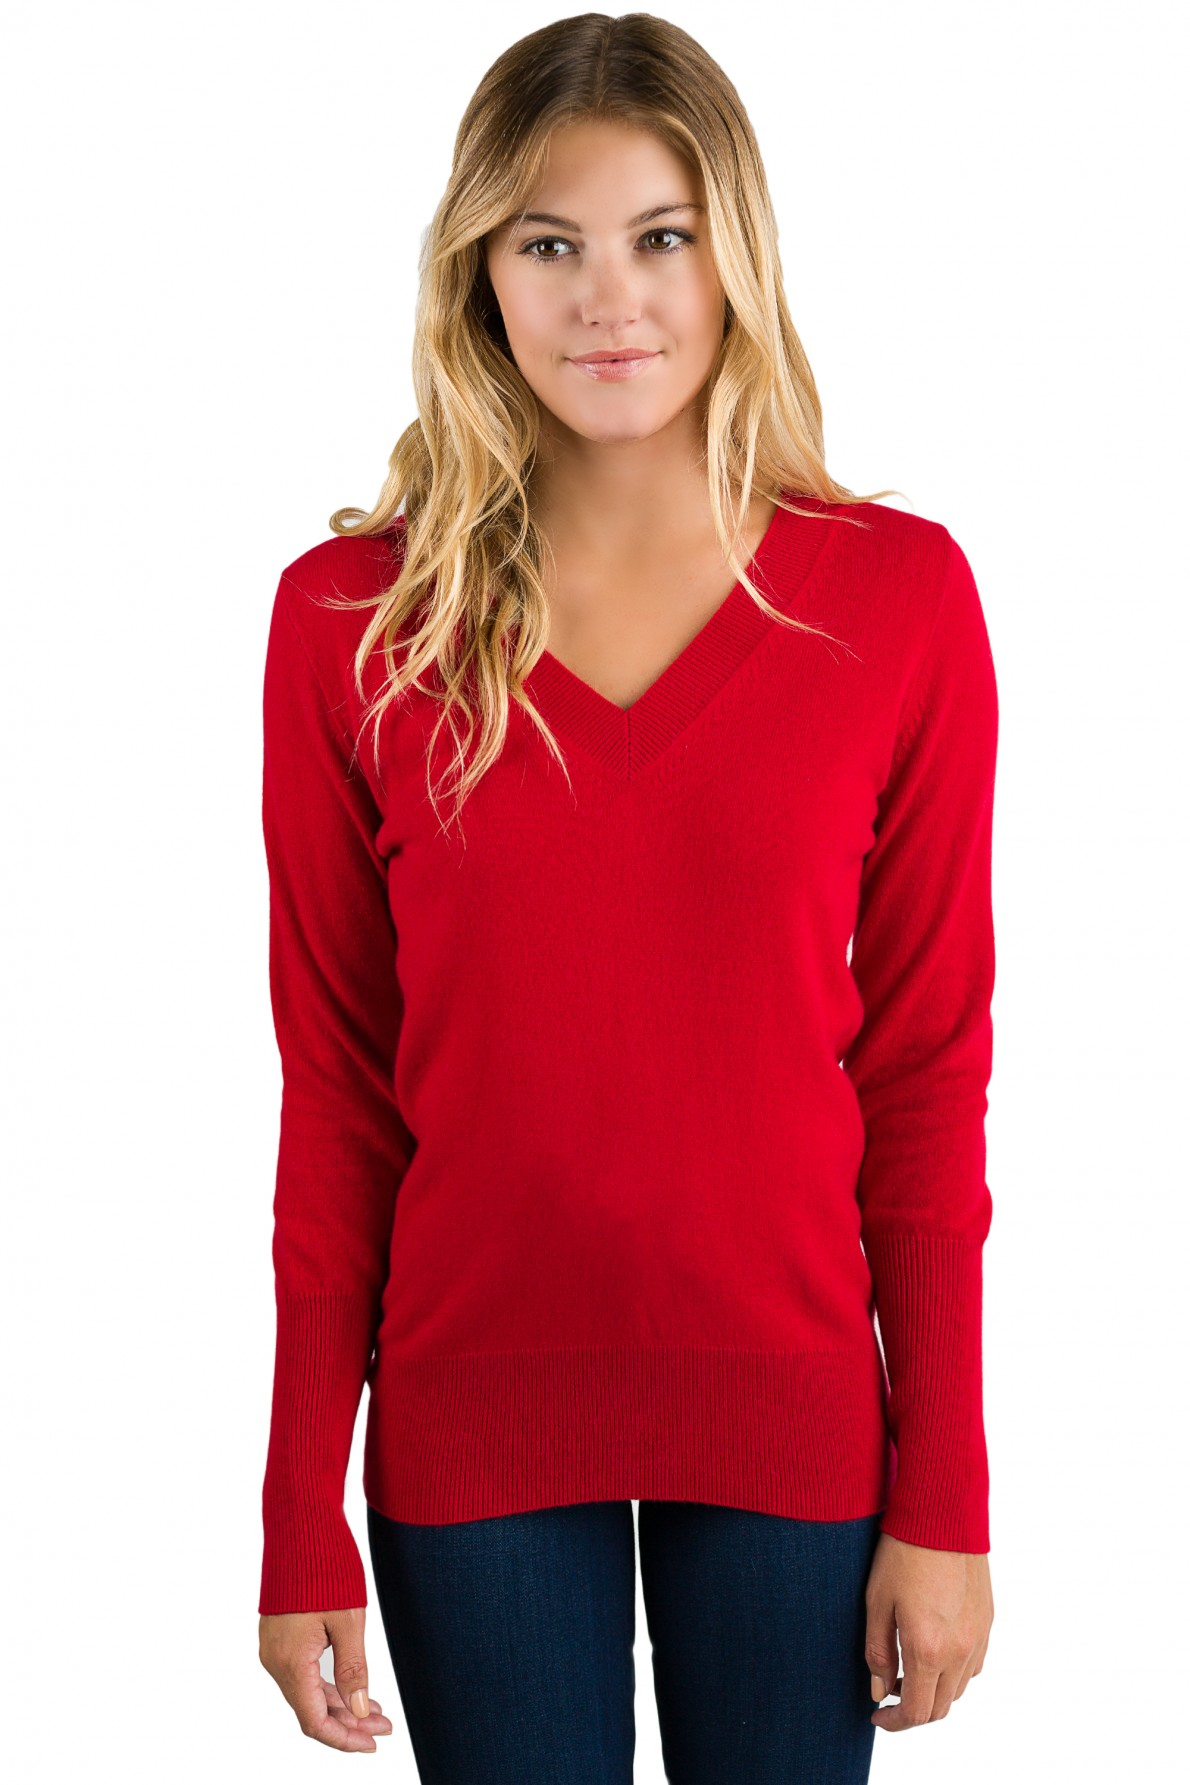 Women'S Red Cashmere Sweater - English Sweater Vest